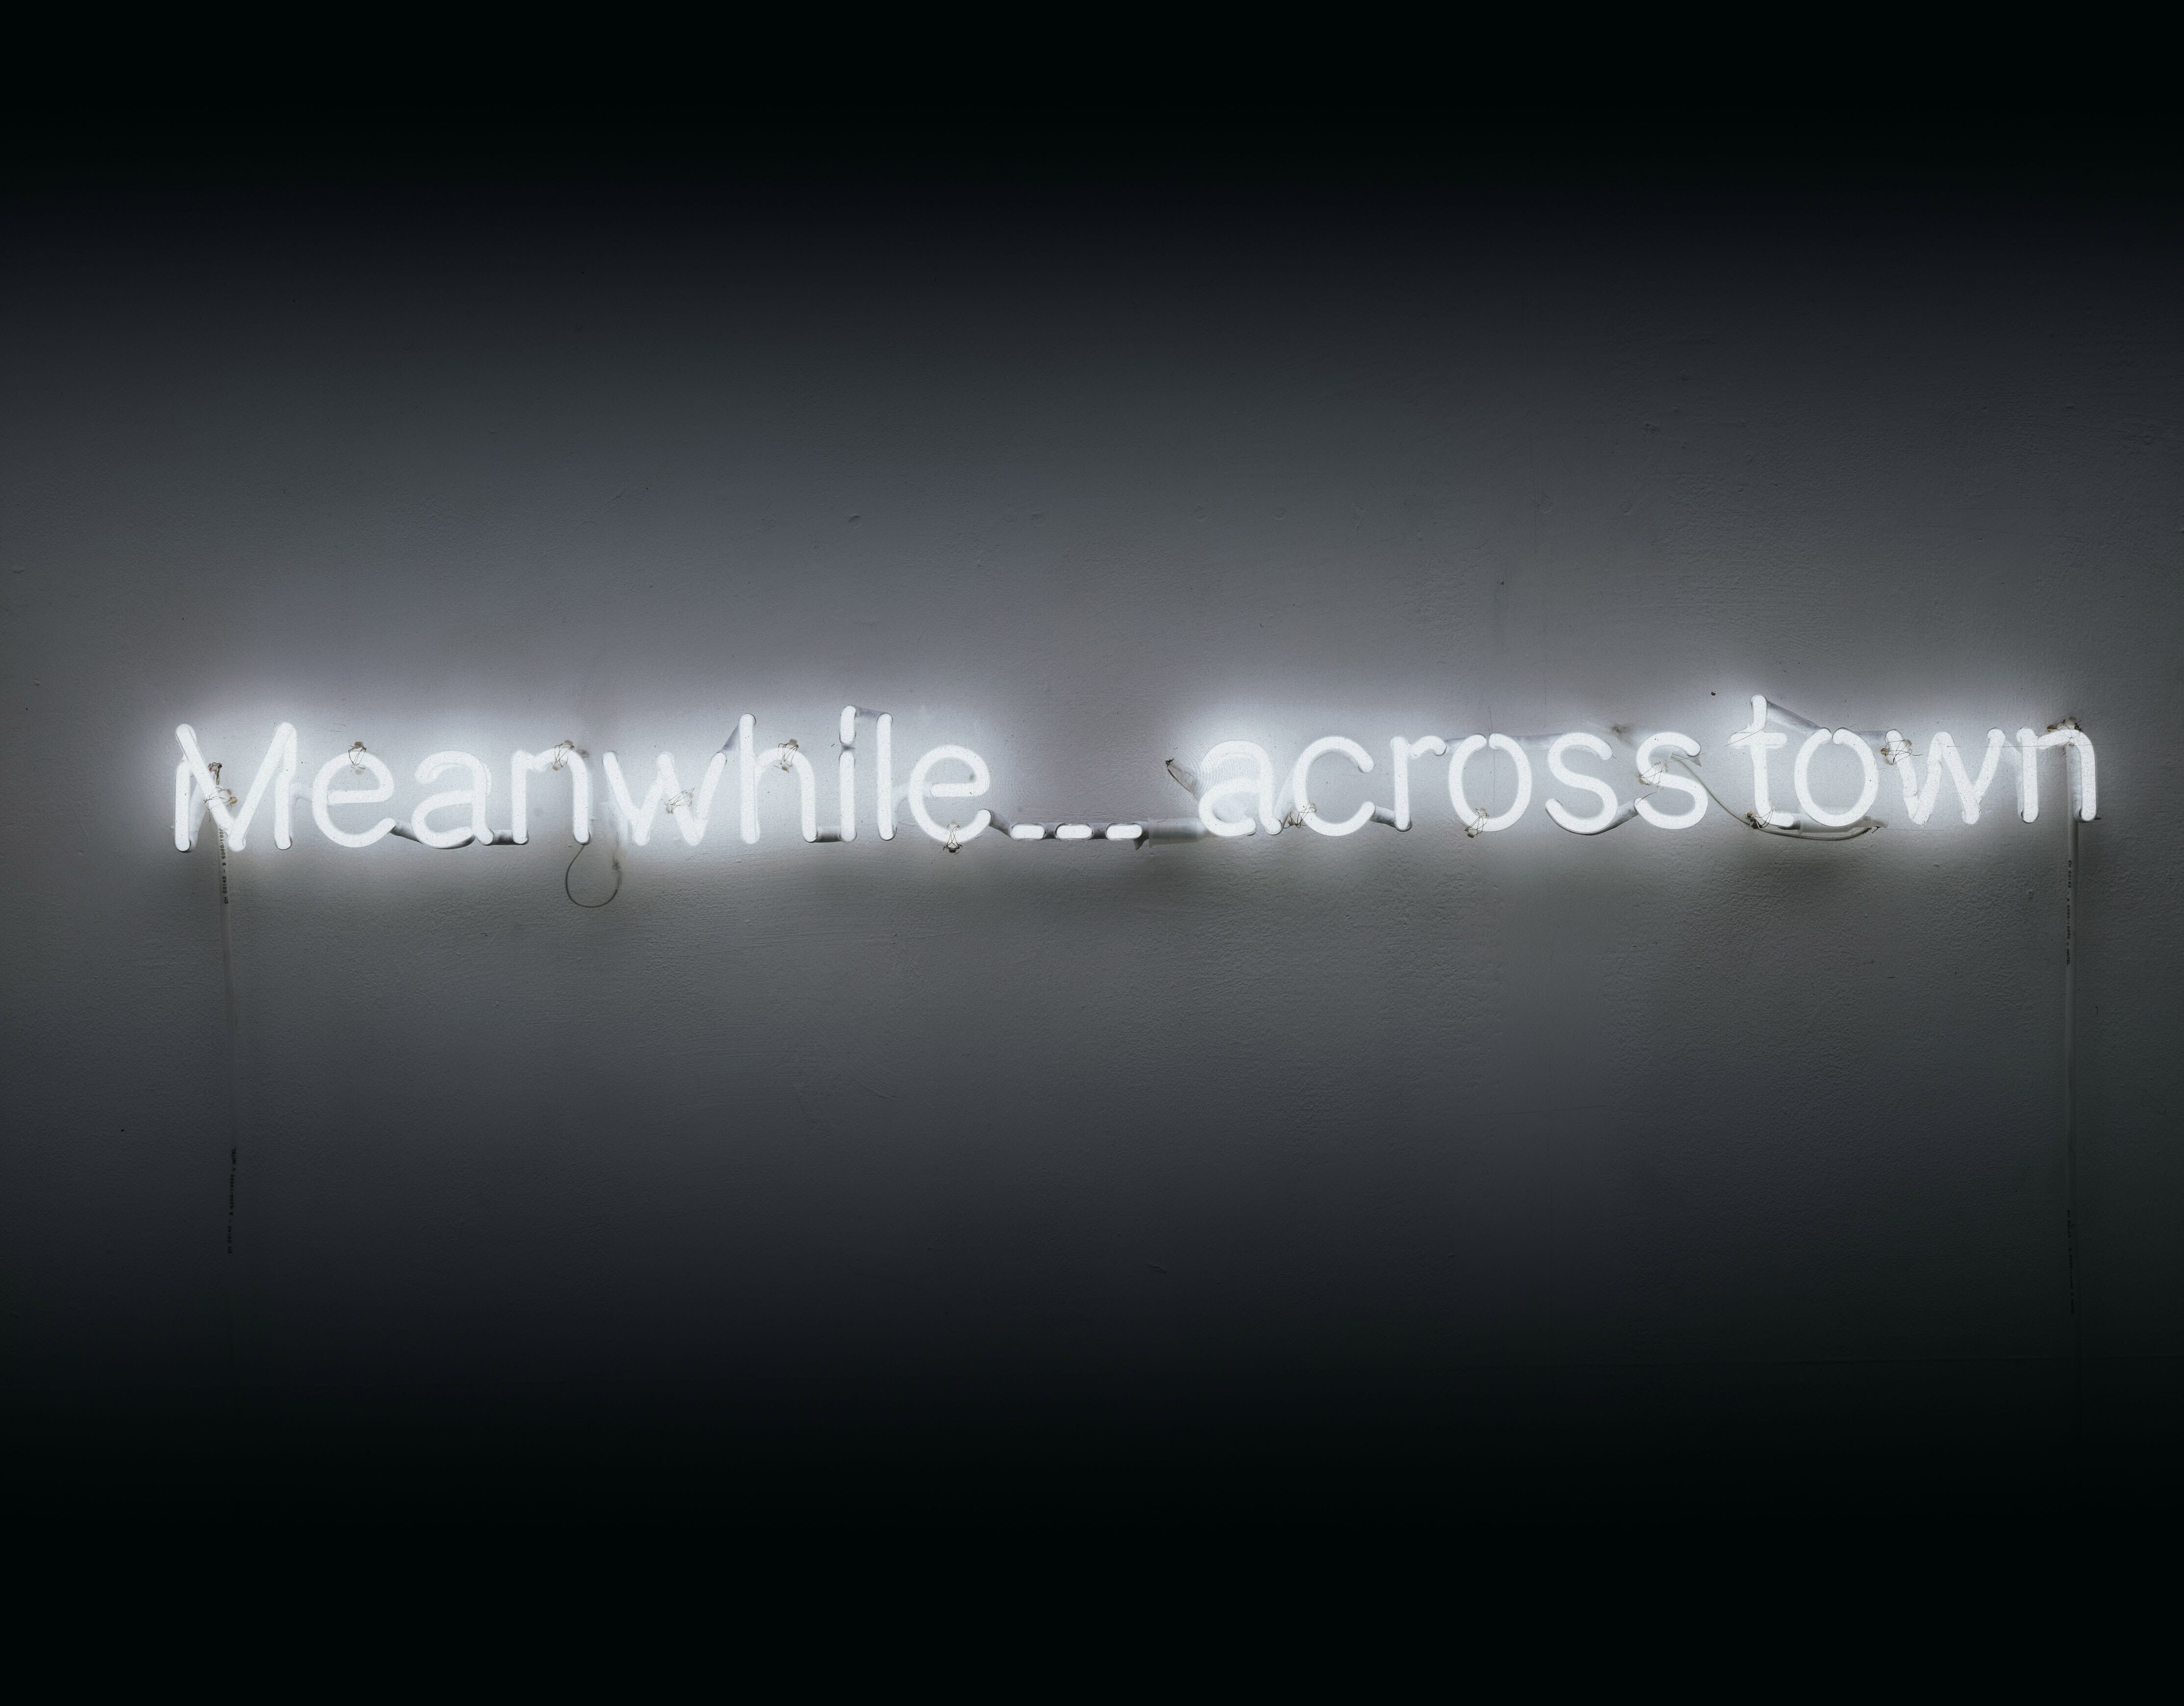 cerith-wyn-evans-meanwhile-across-town-2001-high-res